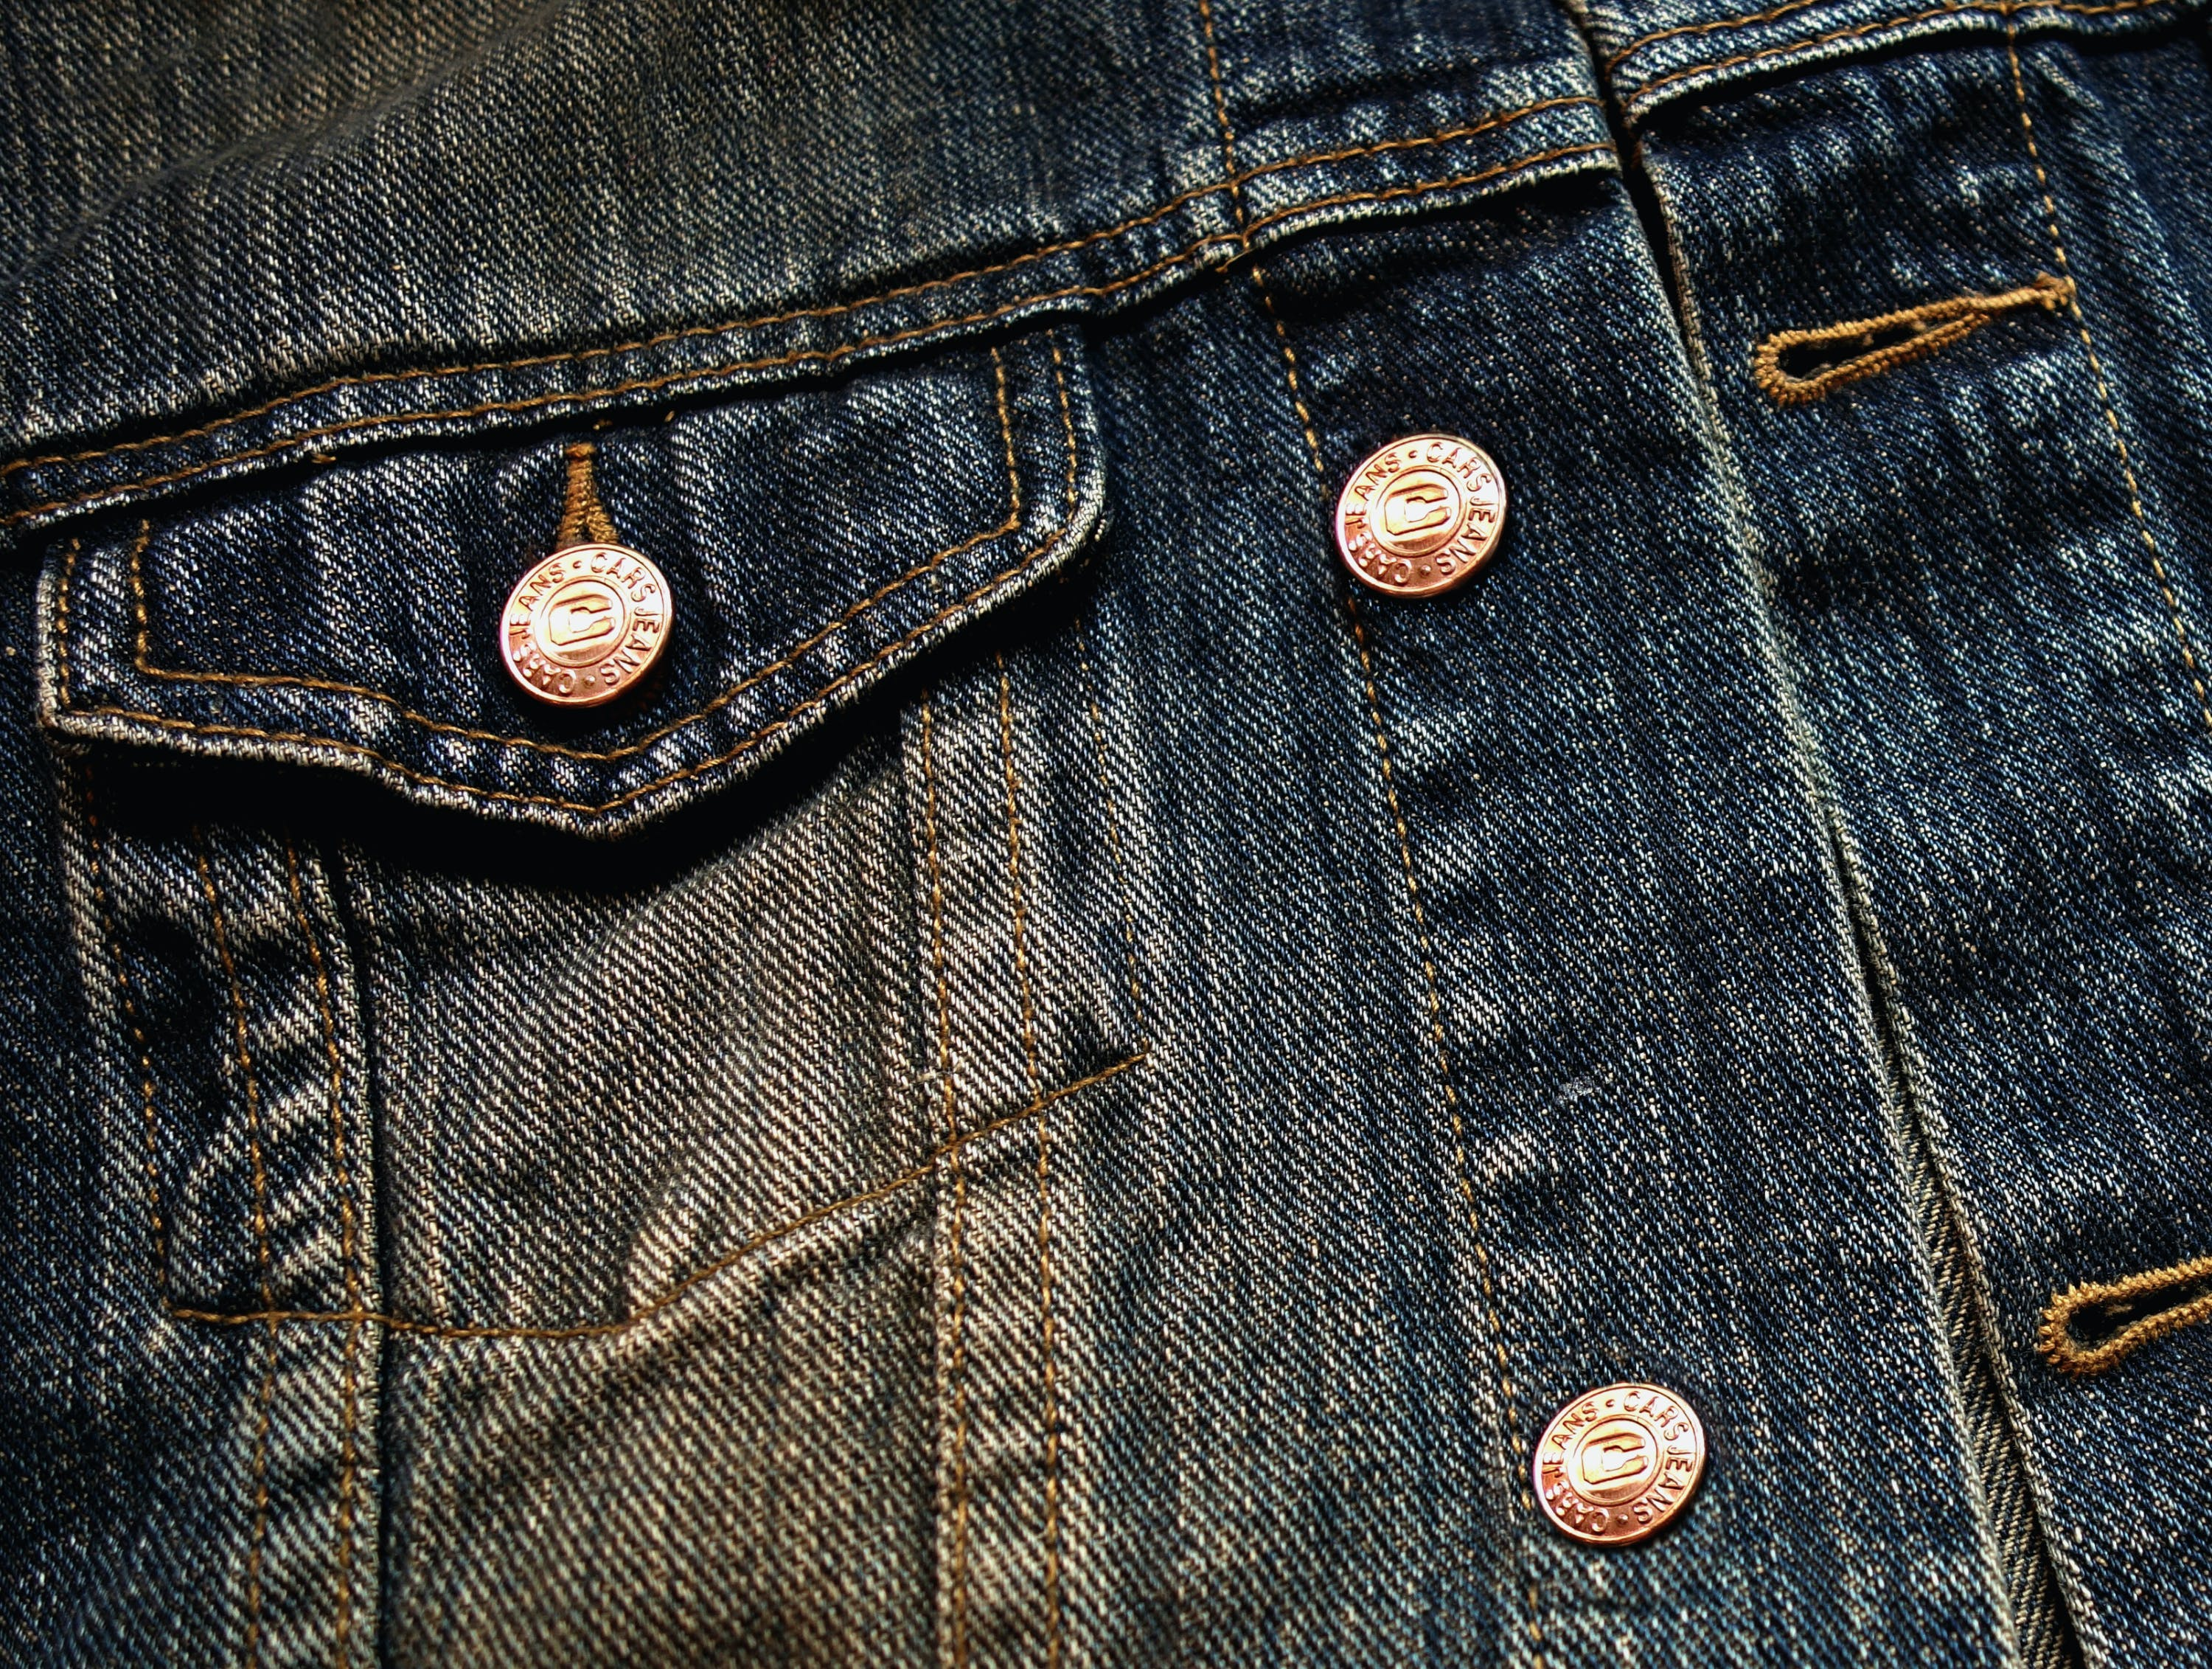 of breast pocket, button, button hole, denim